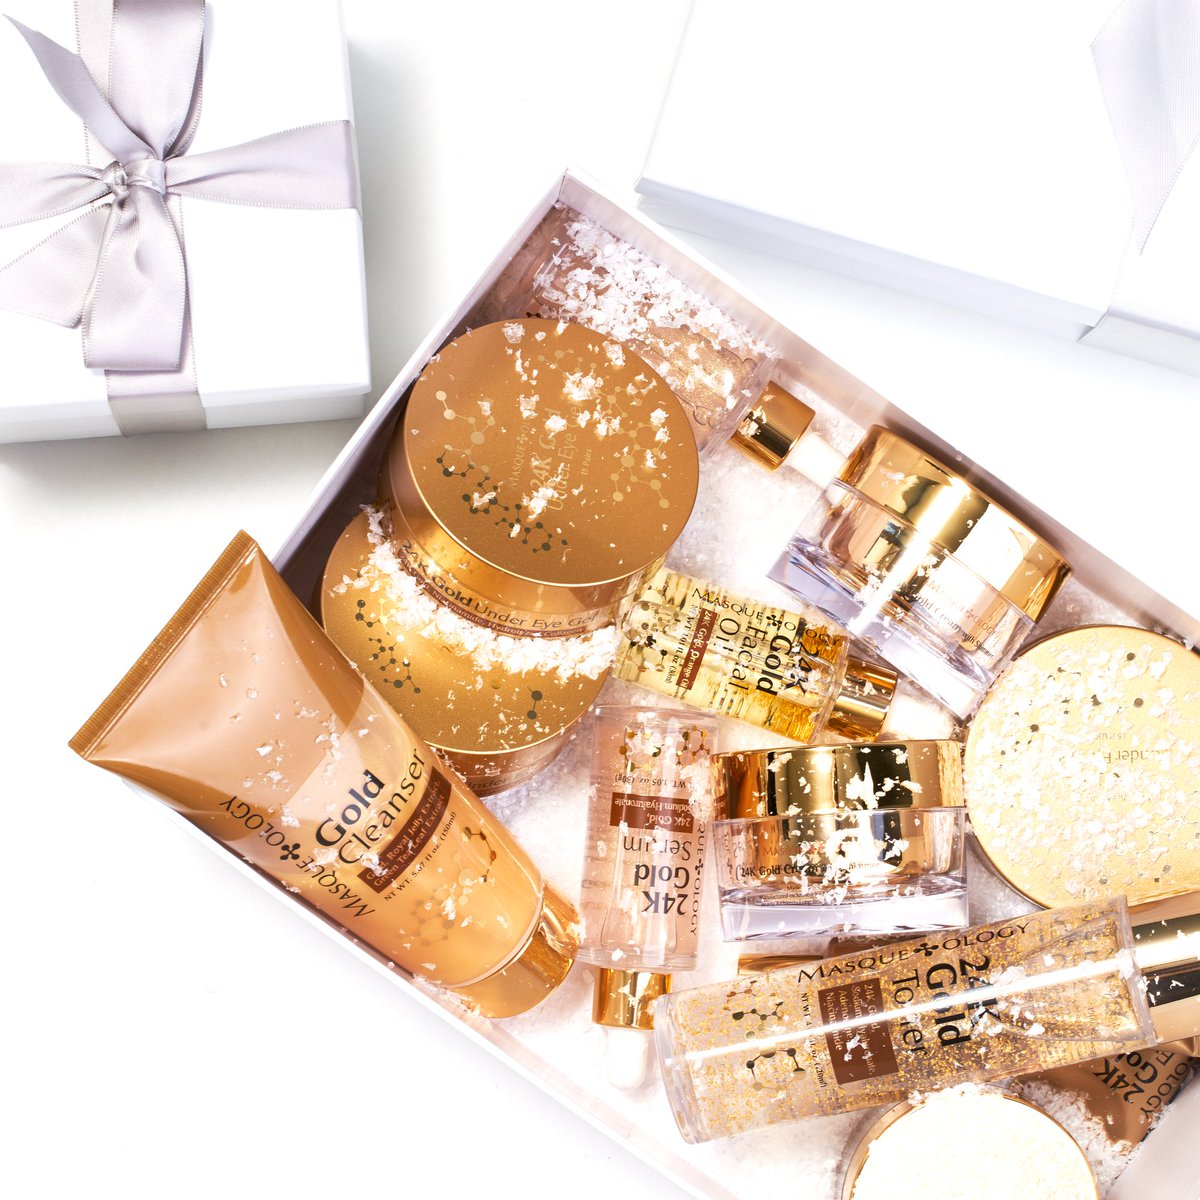 Gold Cleanser by Masqueology #20